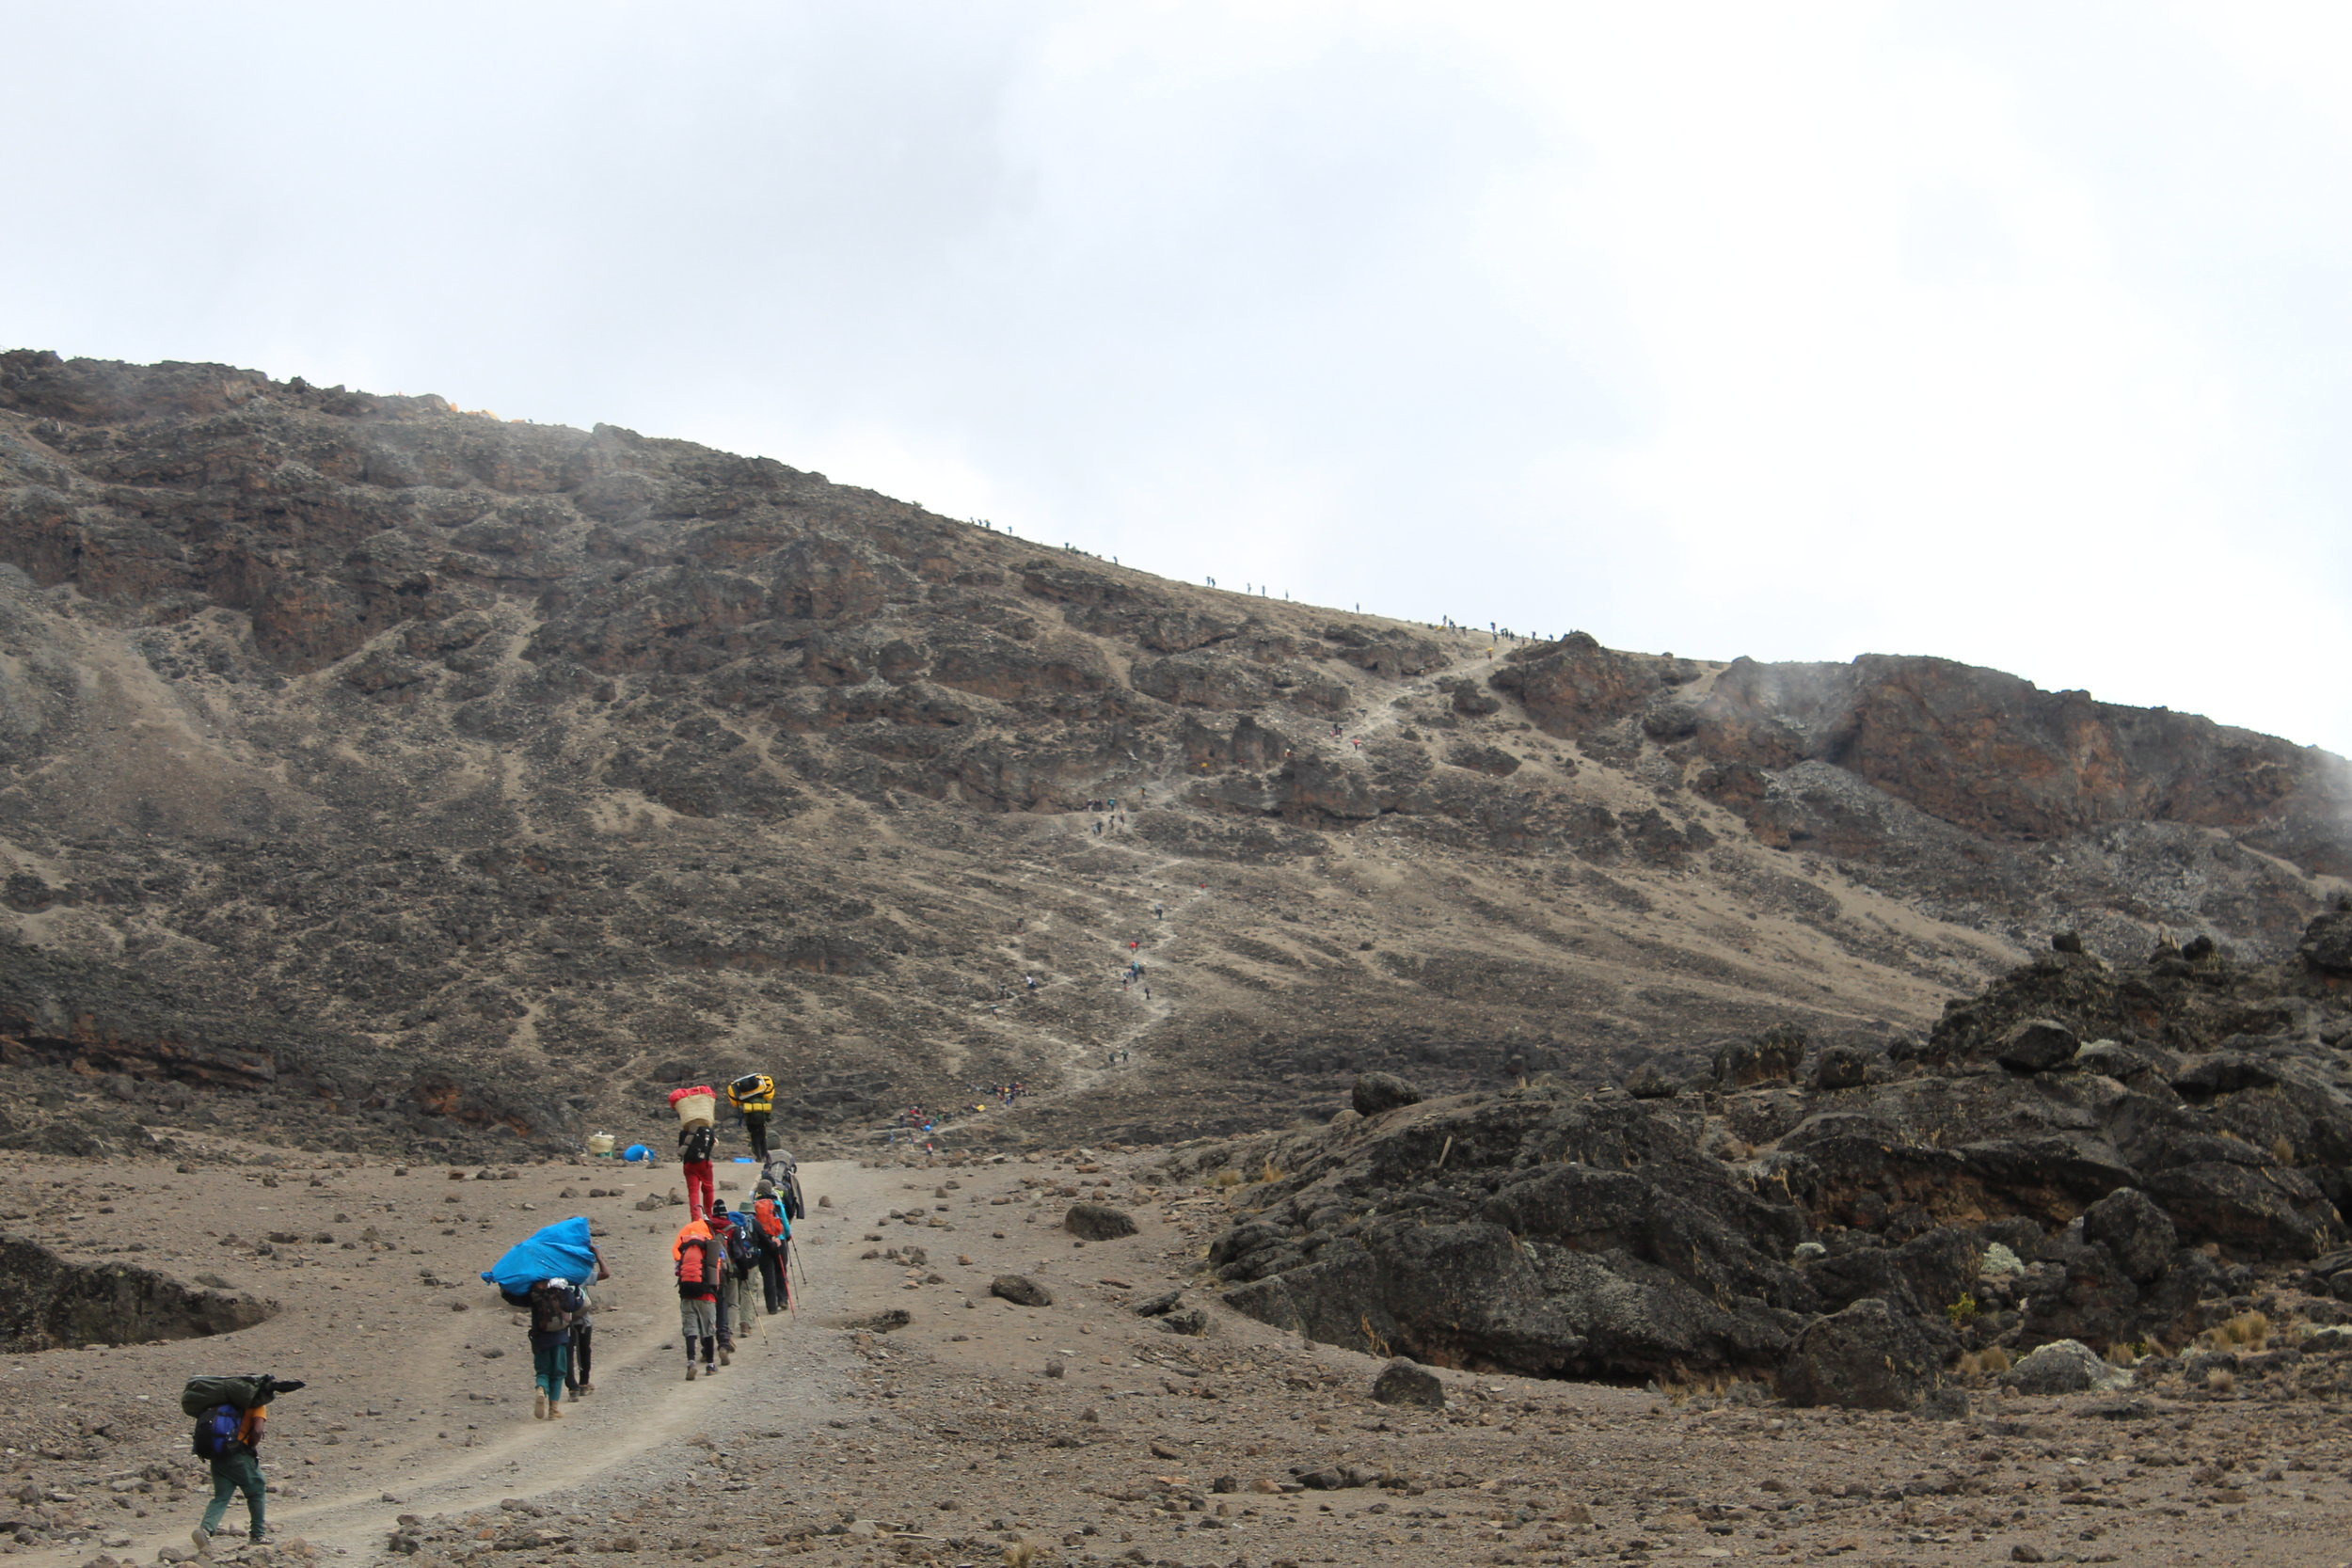 Porters making their way uphill to Barafu Camp